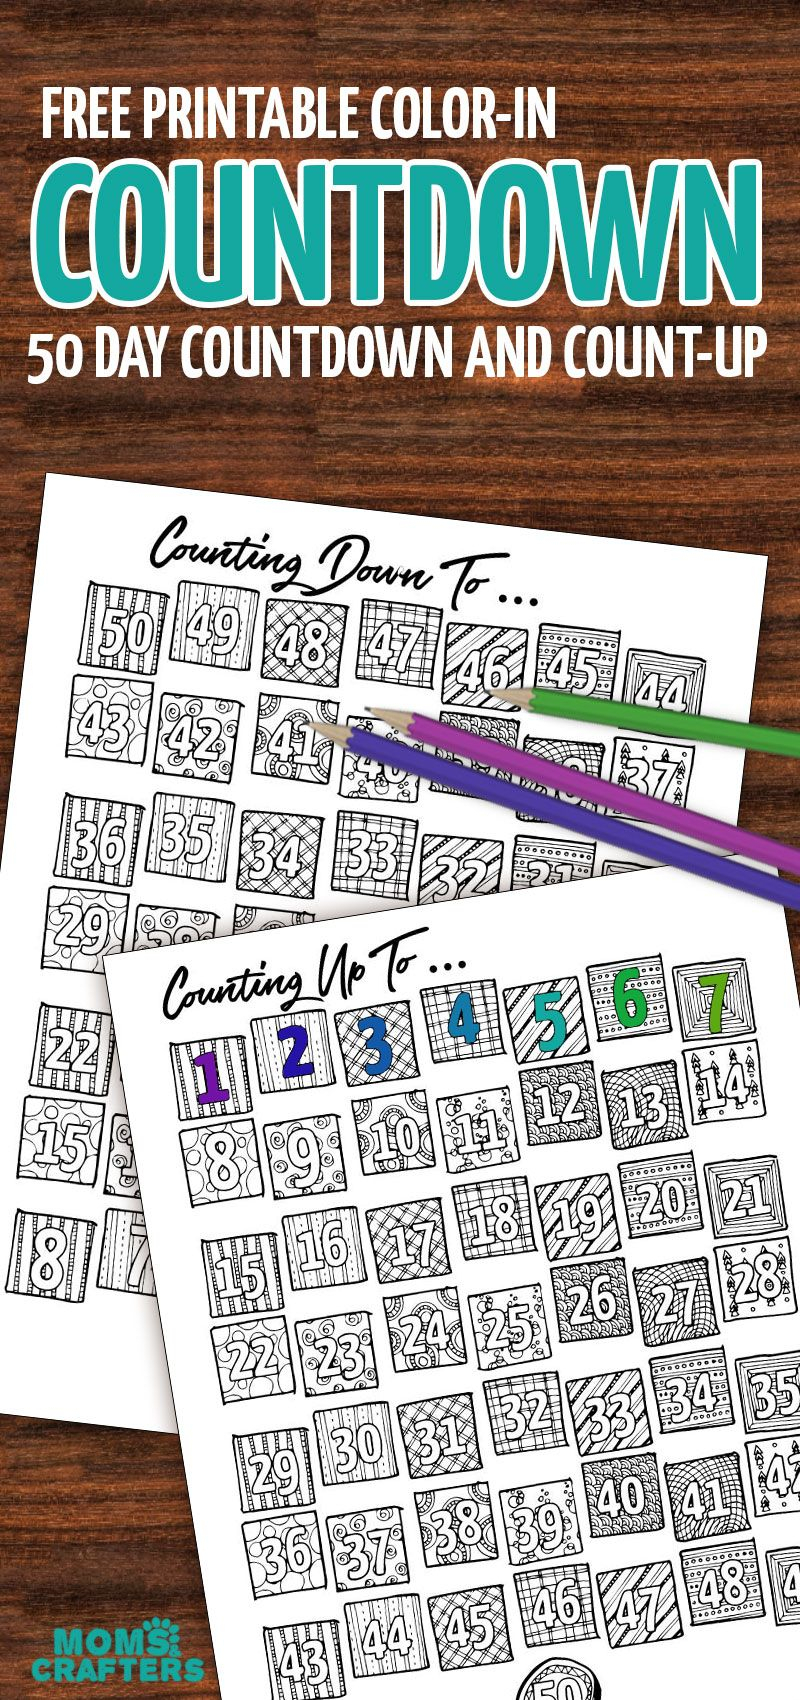 Grab This Fun Colorin Countdown And Progress Tracker throughout 365 Countdown Calendar